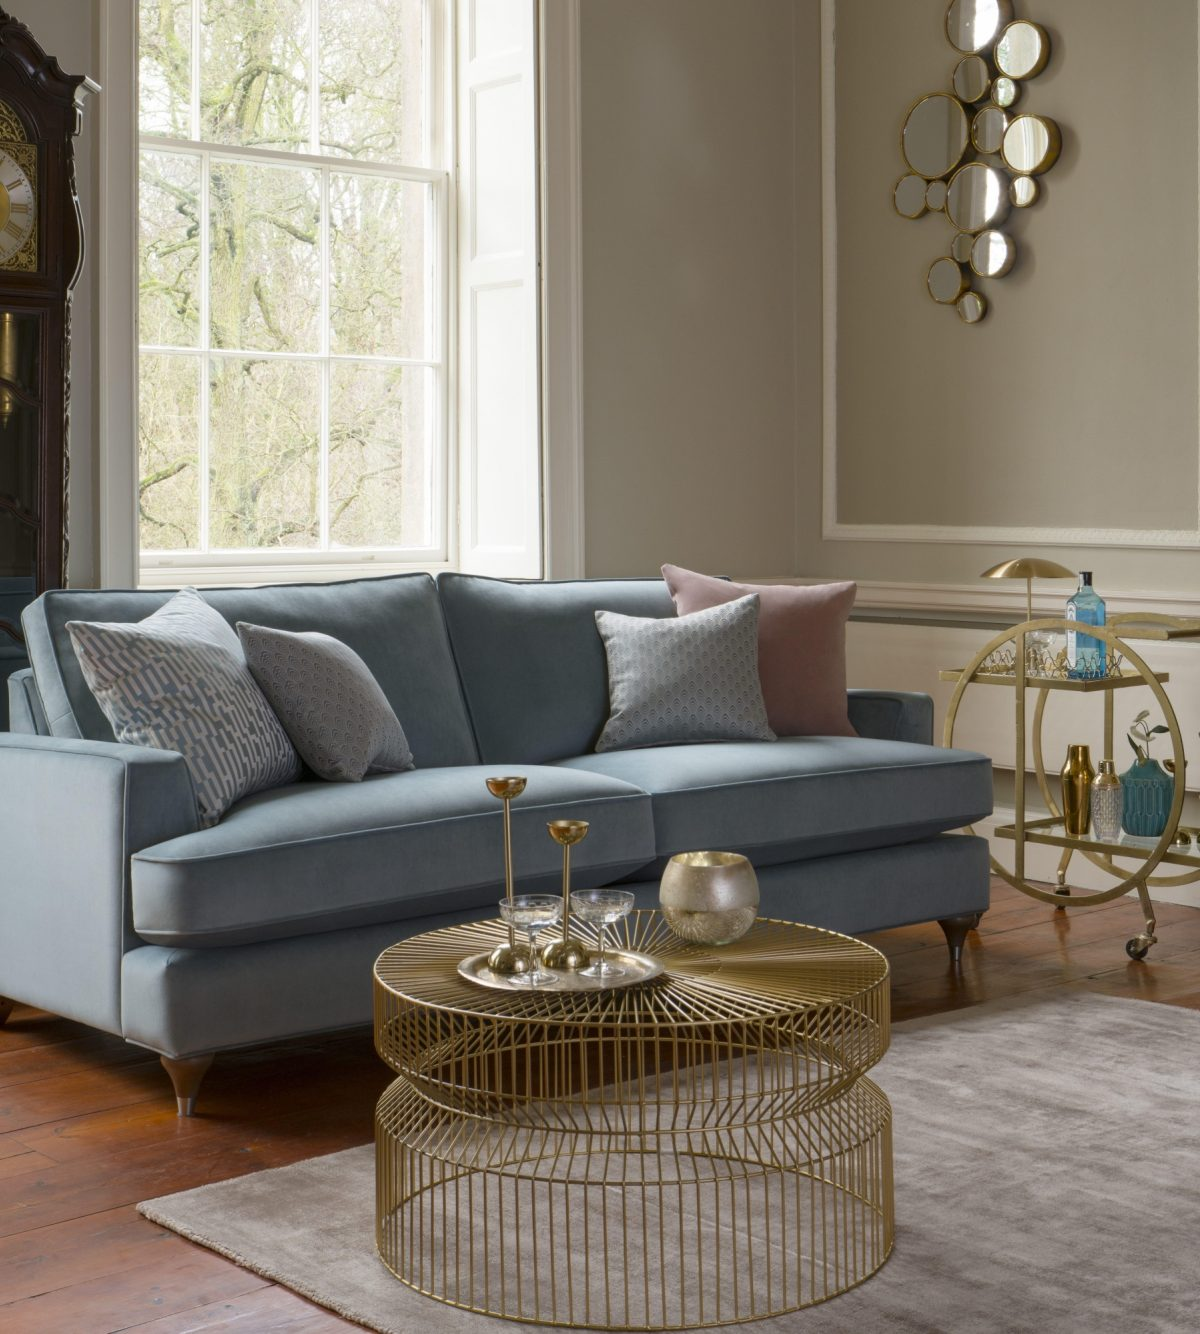 Hoxton Grand Sofa in Bracklyn Teal with Wenlock Teal Charlotte Teal and Bracklyn Blush scatters